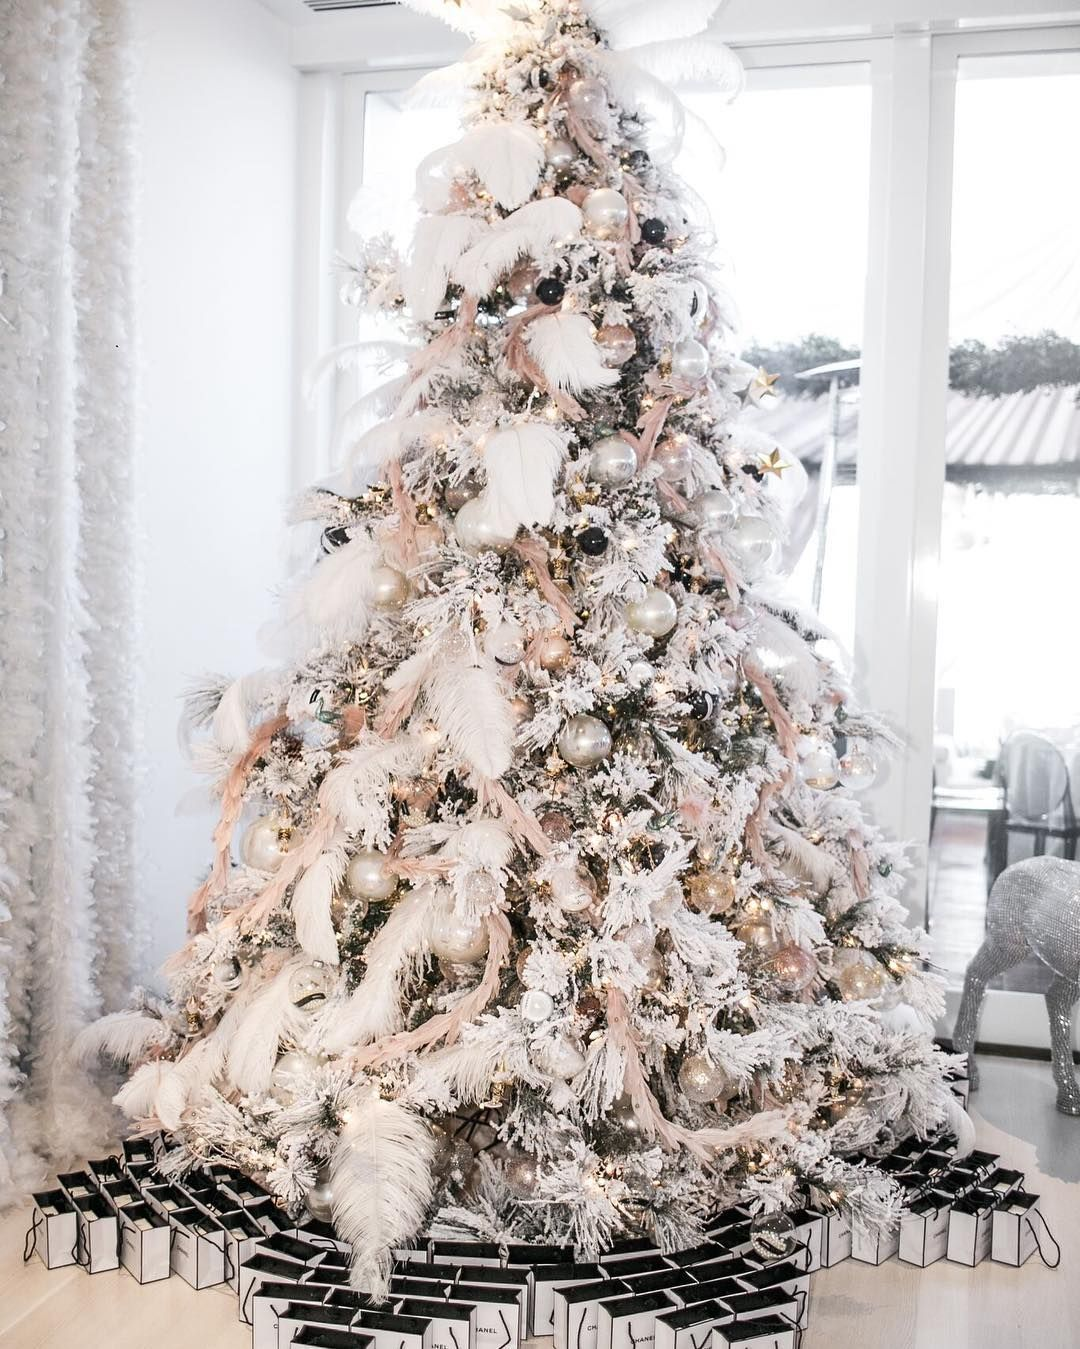 """Whitelilacinc on Instagram: """"'Twas the prettiest tree filled with @chanelofficial ornaments and goody bags ❄️❄️❄️#whitelilacinc #christmastree #christmas photo:…"""""""